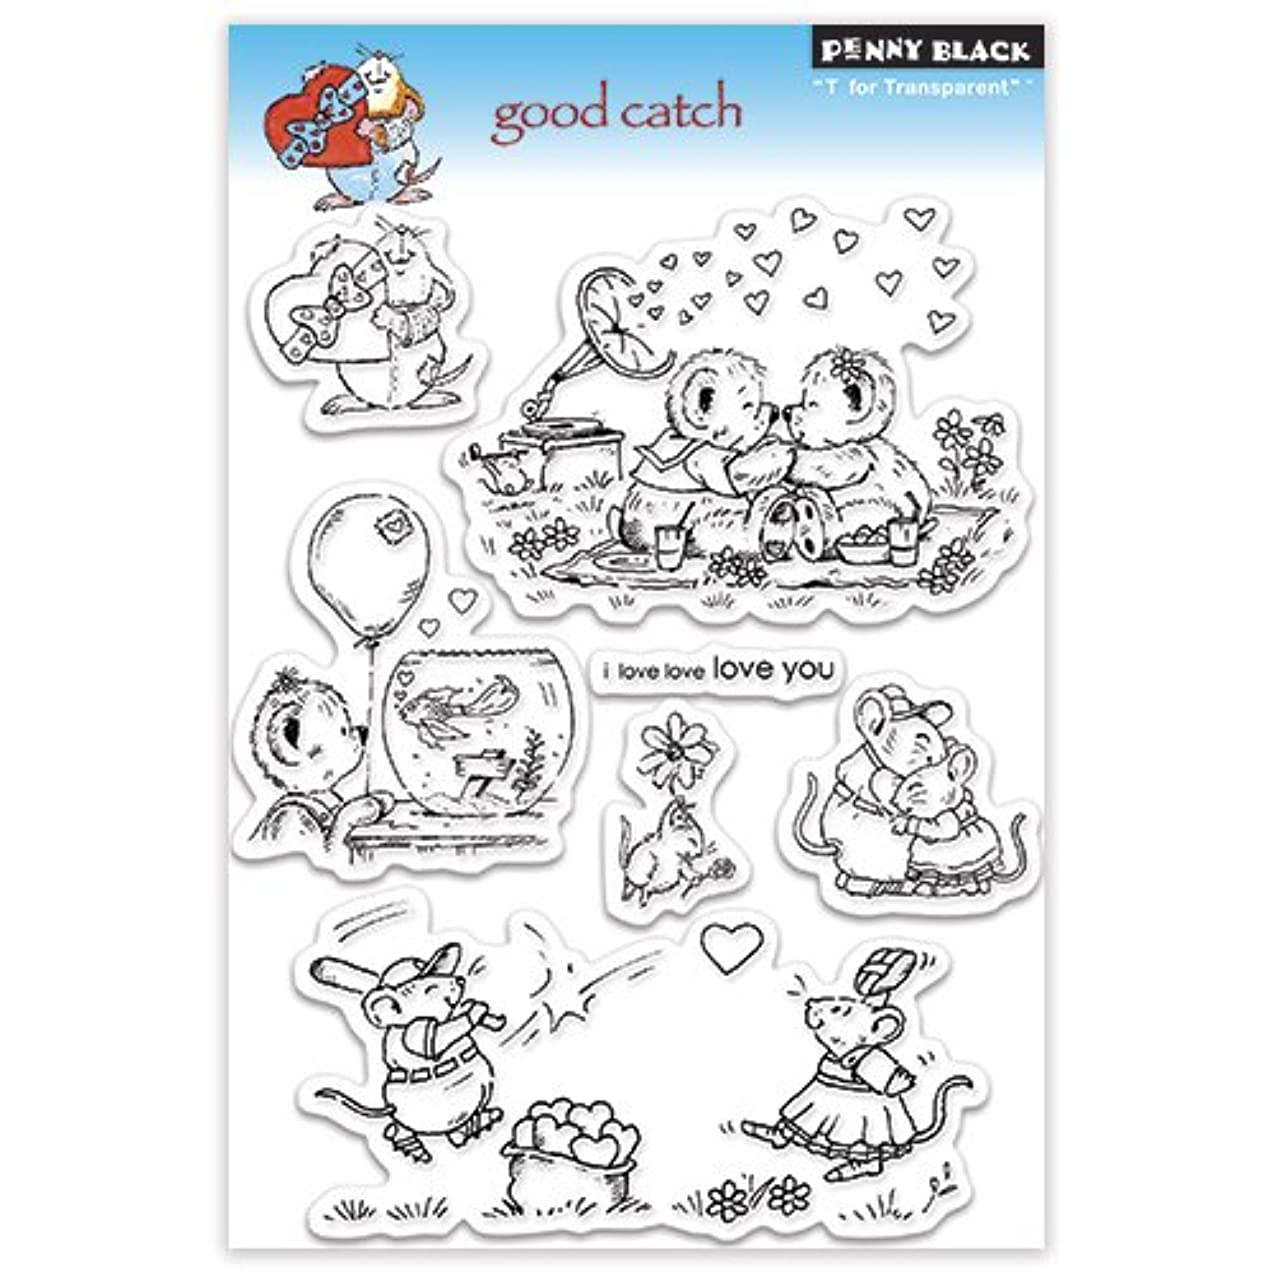 Penny Black Clear Stamp Set, Good Catch